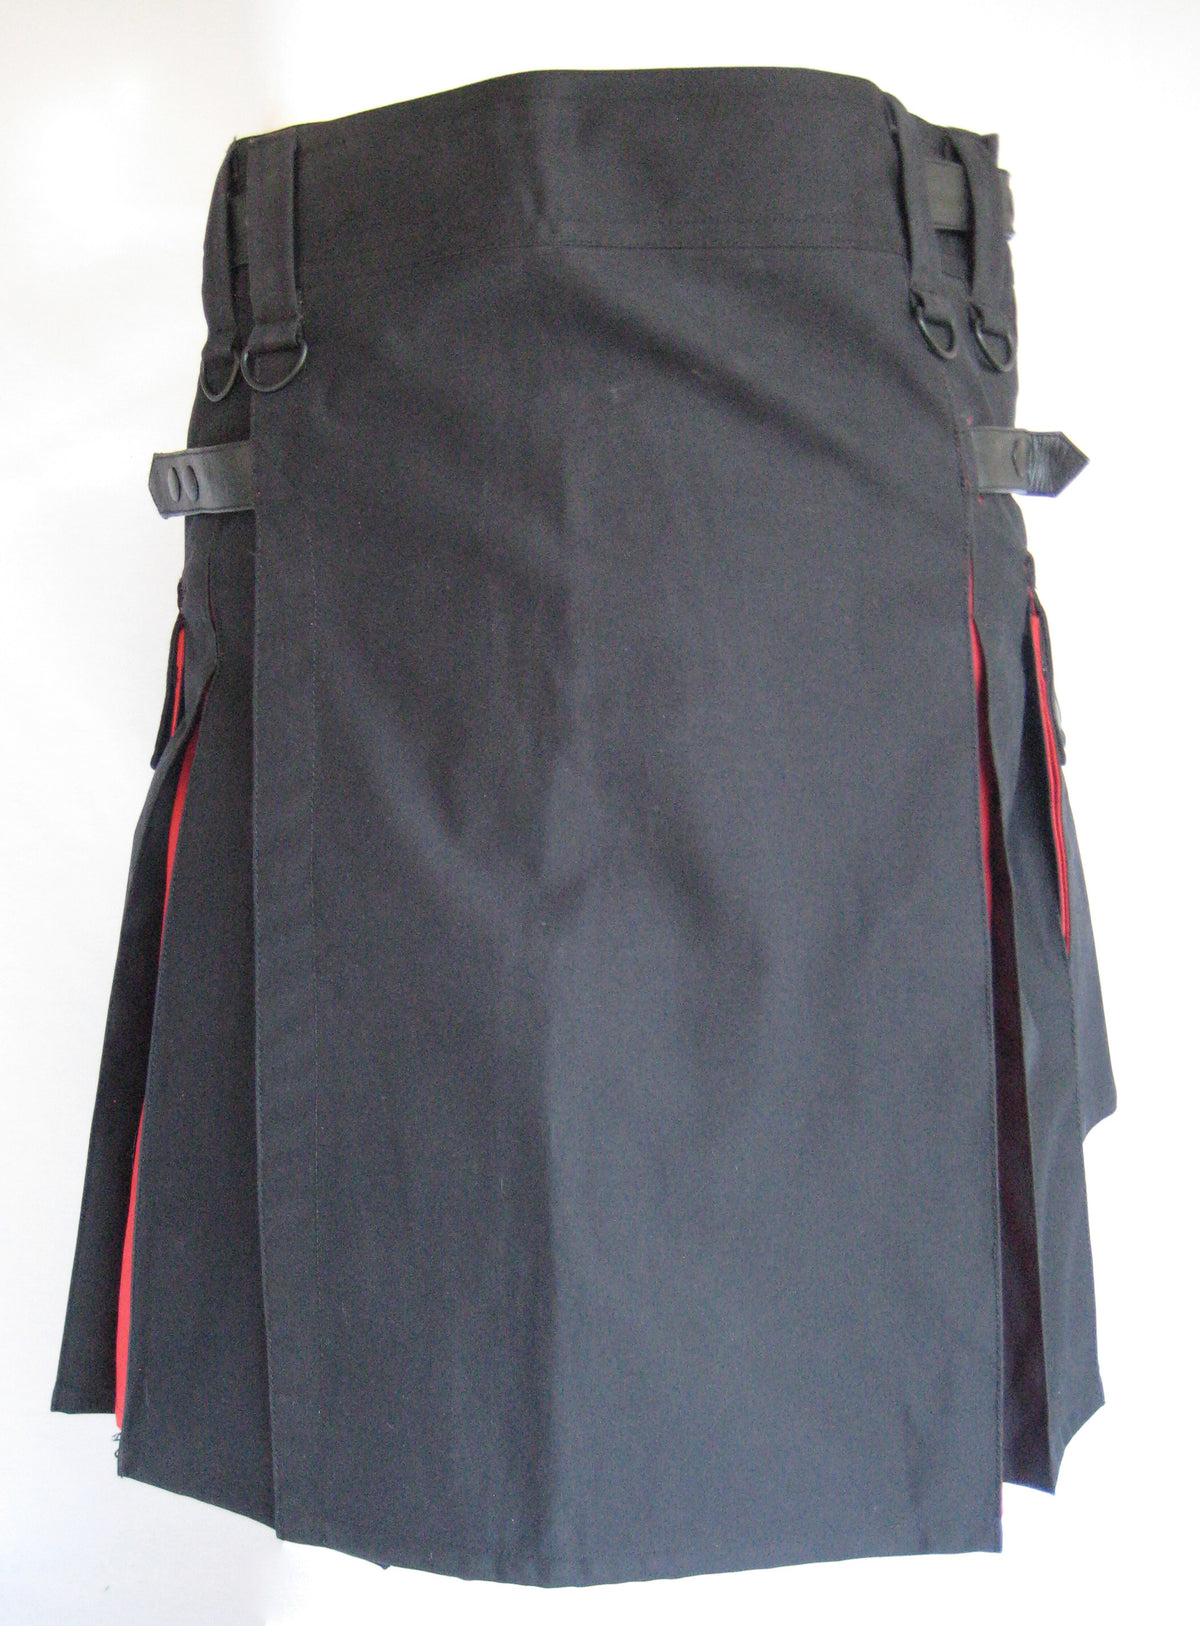 Men's Two-Tone Kilt - Black and Red